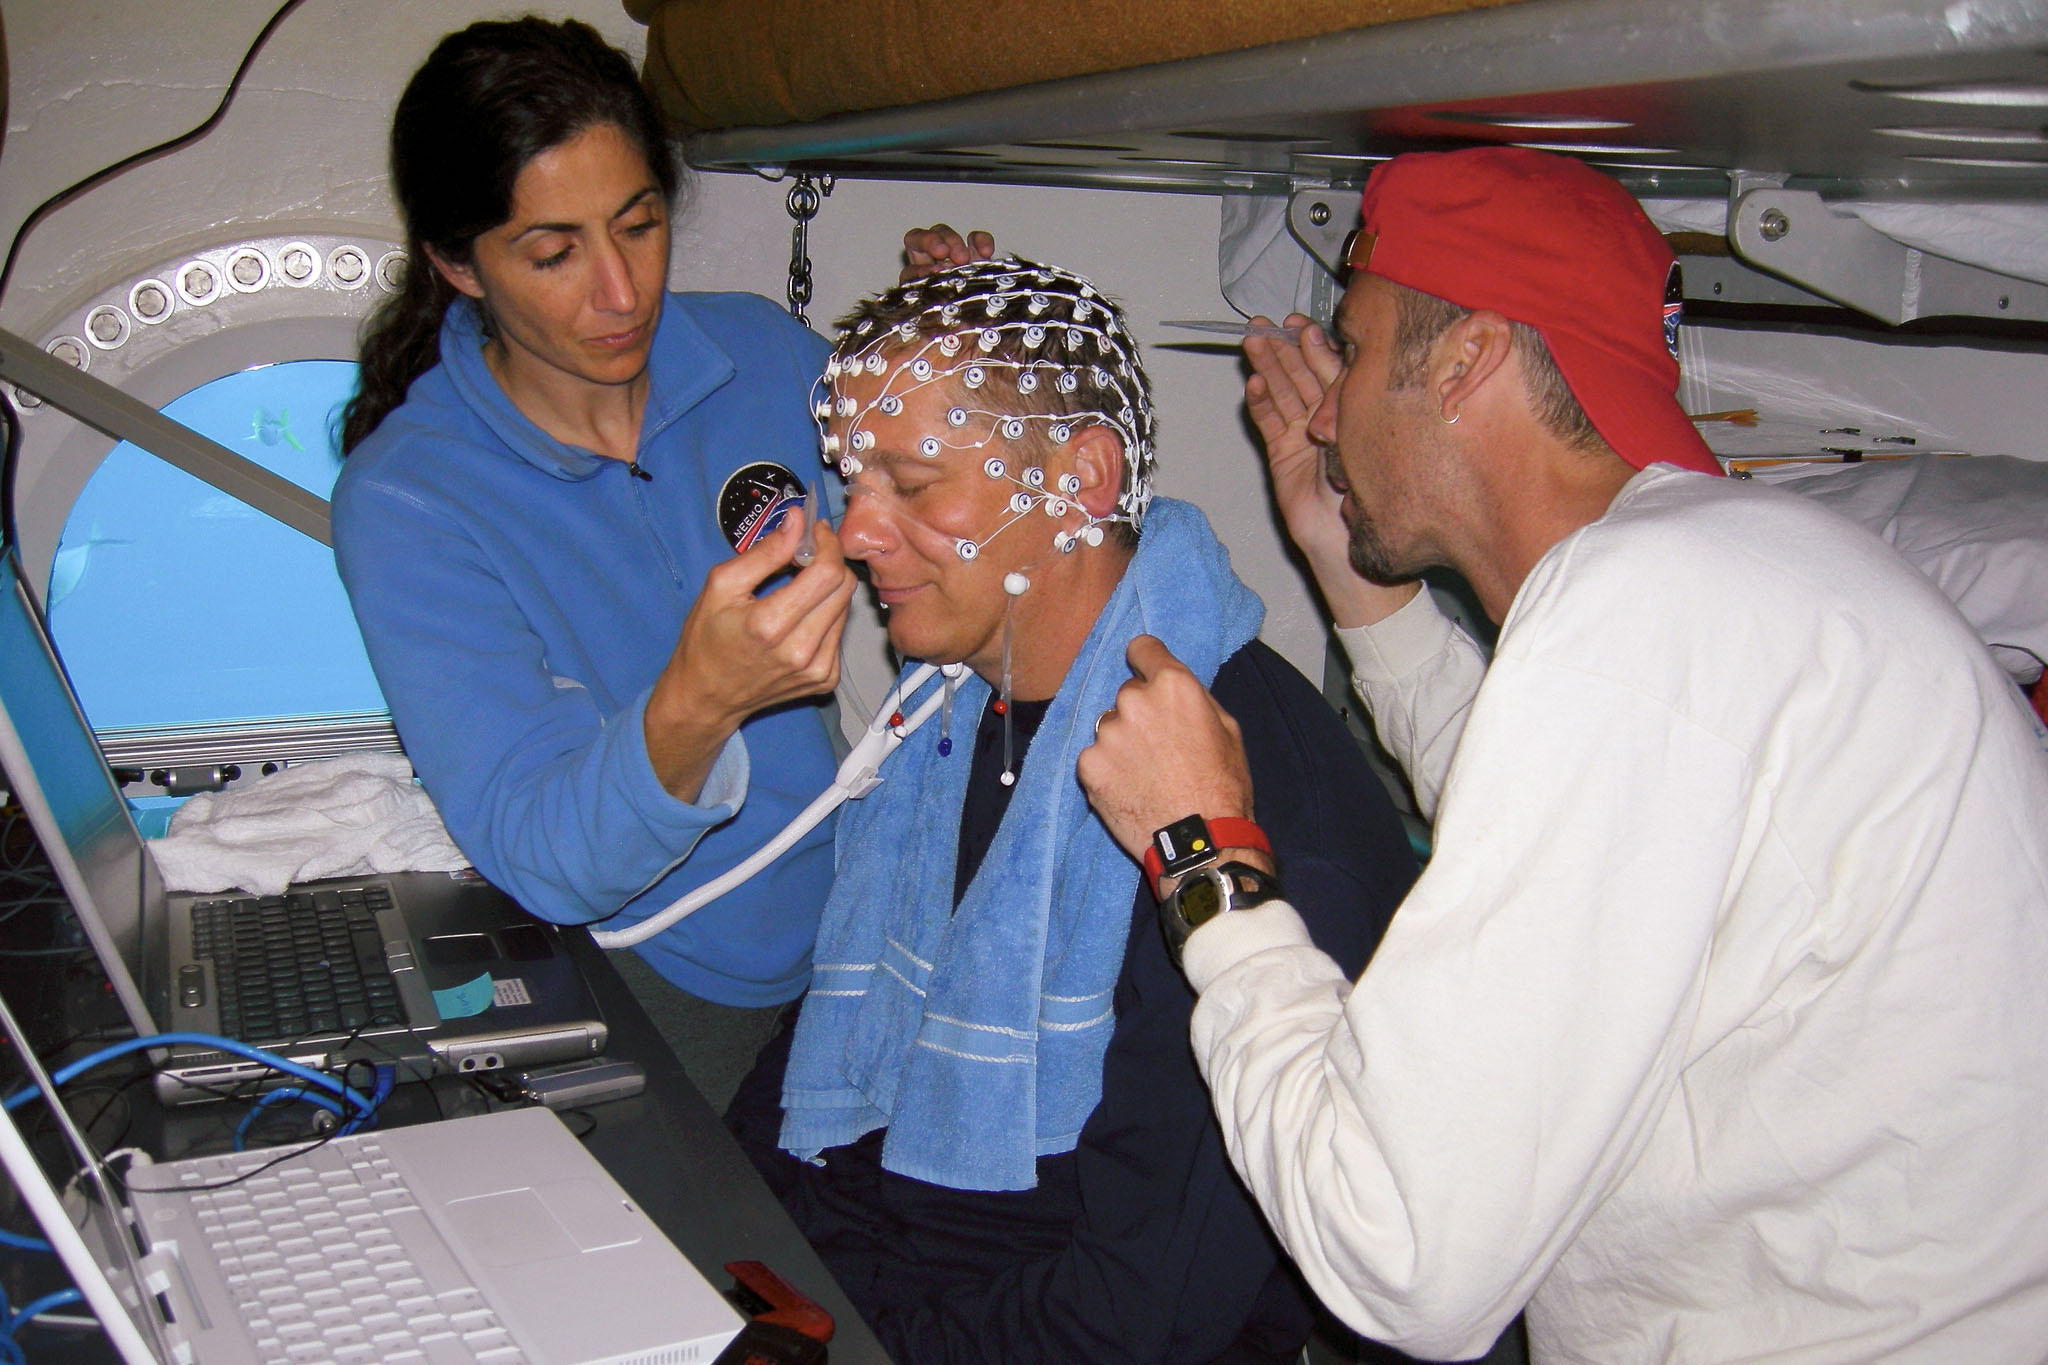 two people setting up an electroencephalogram cap on another person